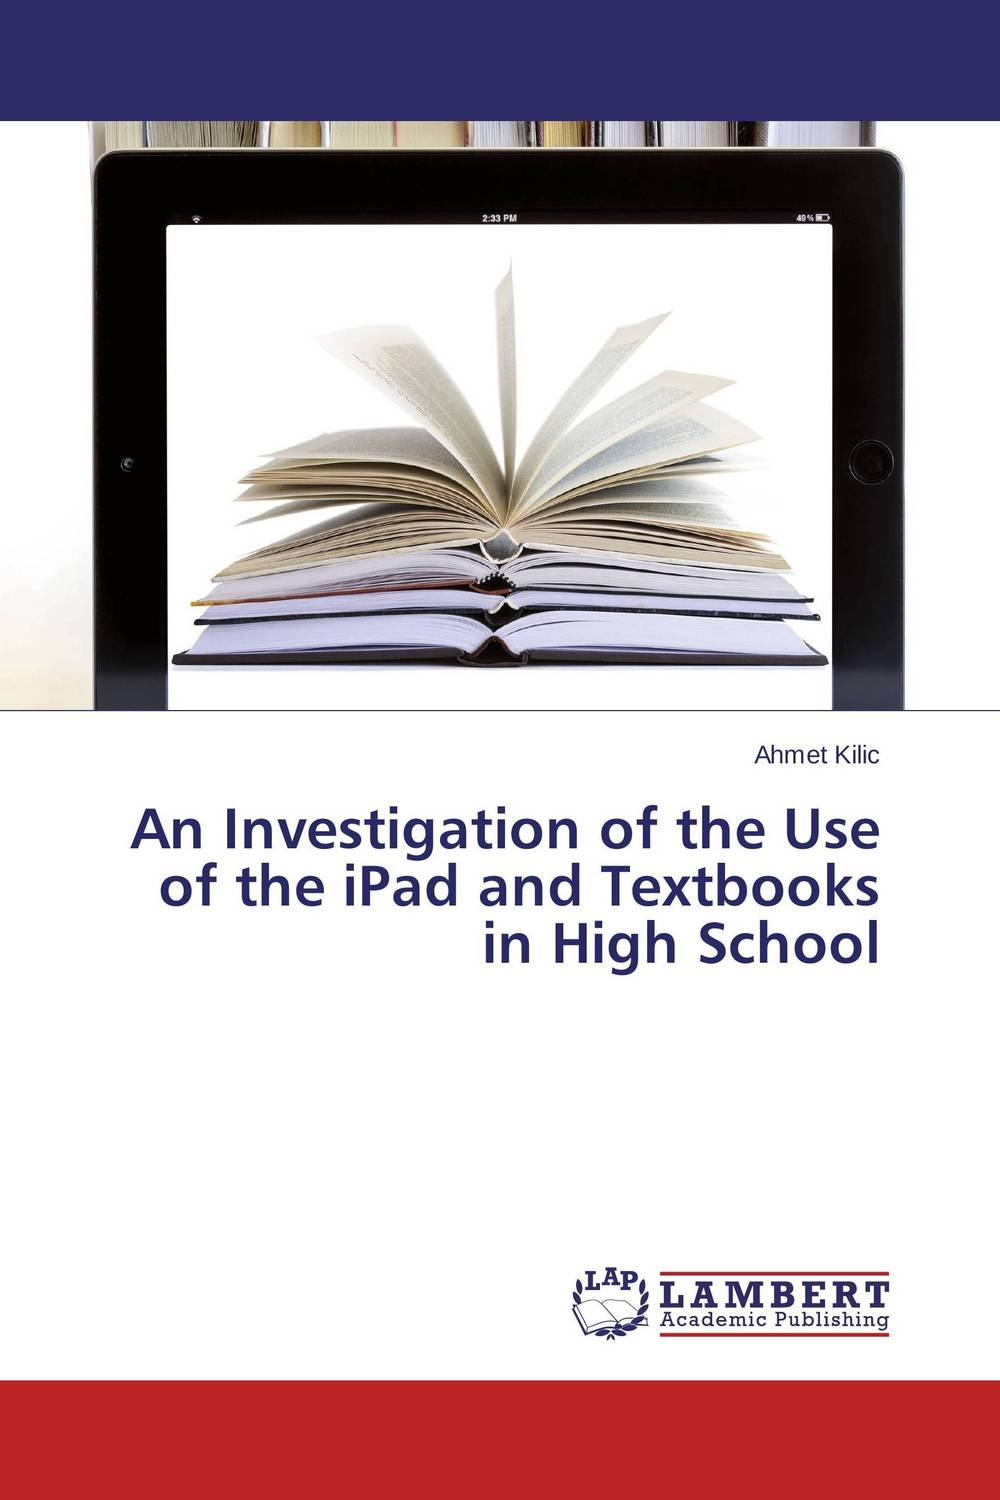 An Investigation of the Use of the iPad and Textbooks in High School driven to distraction